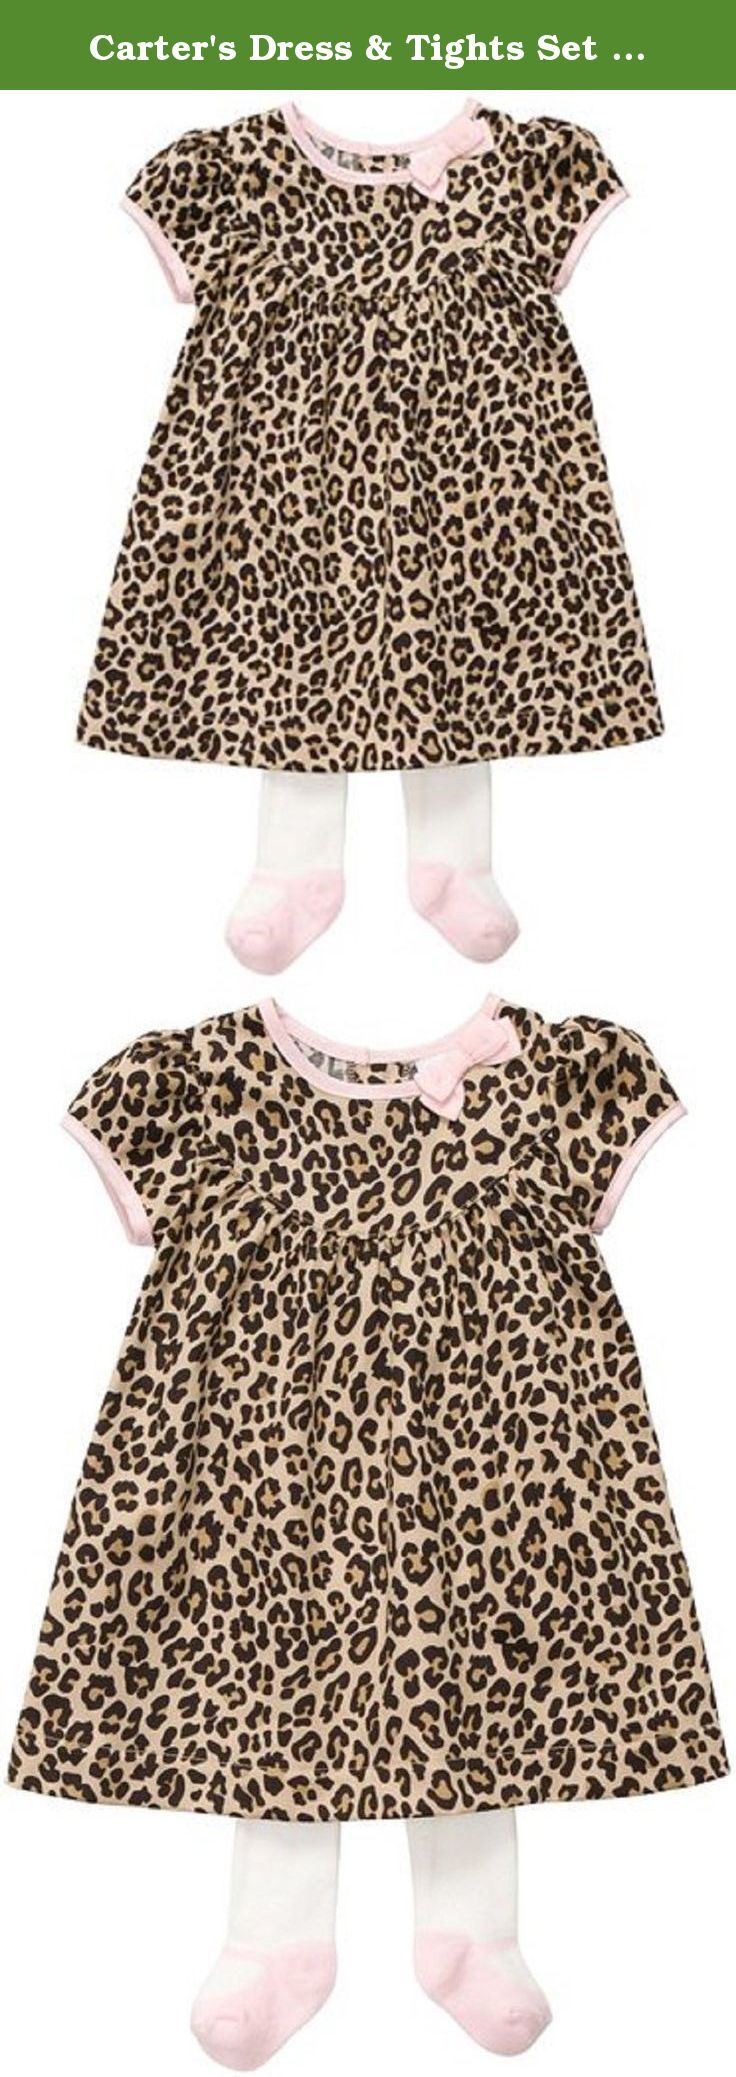 Carter's Dress & Tights Set - Leopard-6M. Carters Dress & Tights Set - Leopard Carter's is the leading brand of children's clothing, gifts and accessories in America, selling more than 10 products for every child born in the U.S. The designs are based on a heritage of quality and innovation that has earned them the trust of generations of families. .